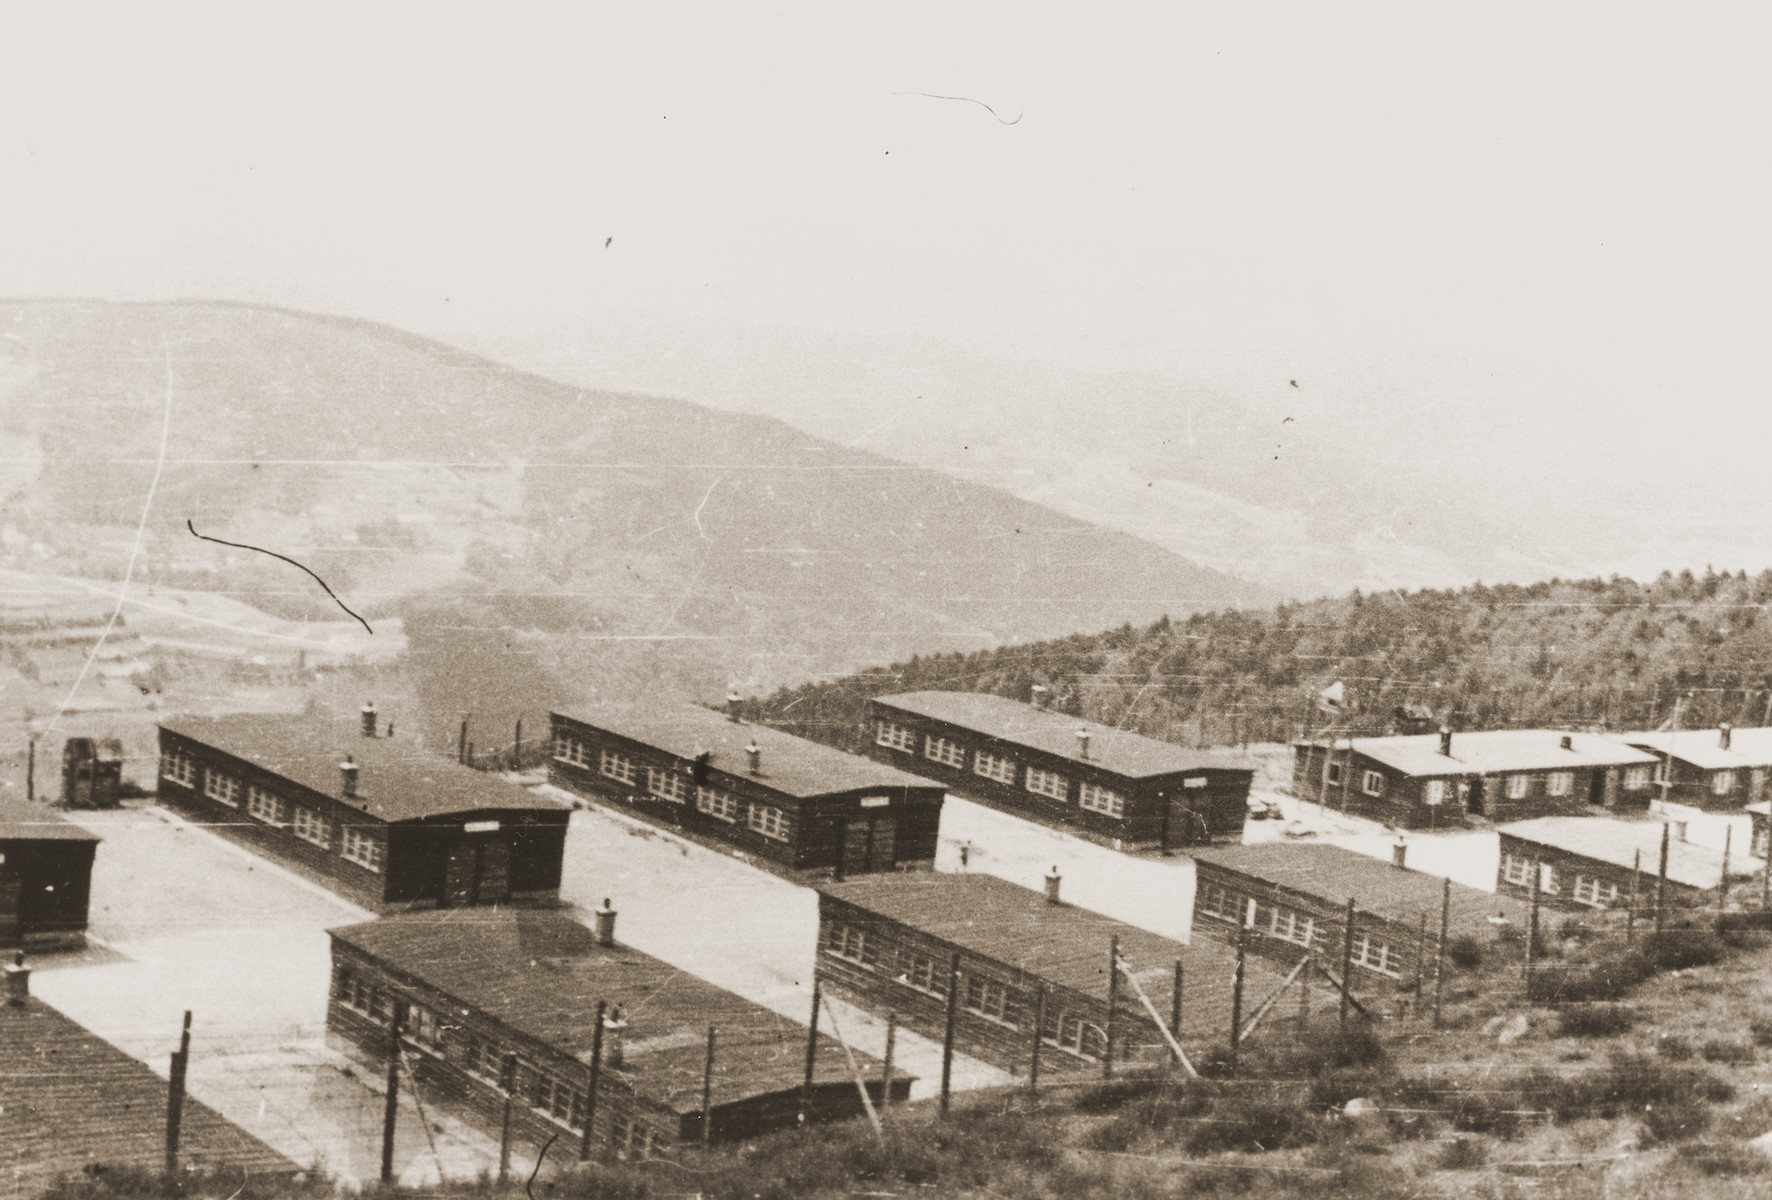 View of the Natzweiler concentration camp.